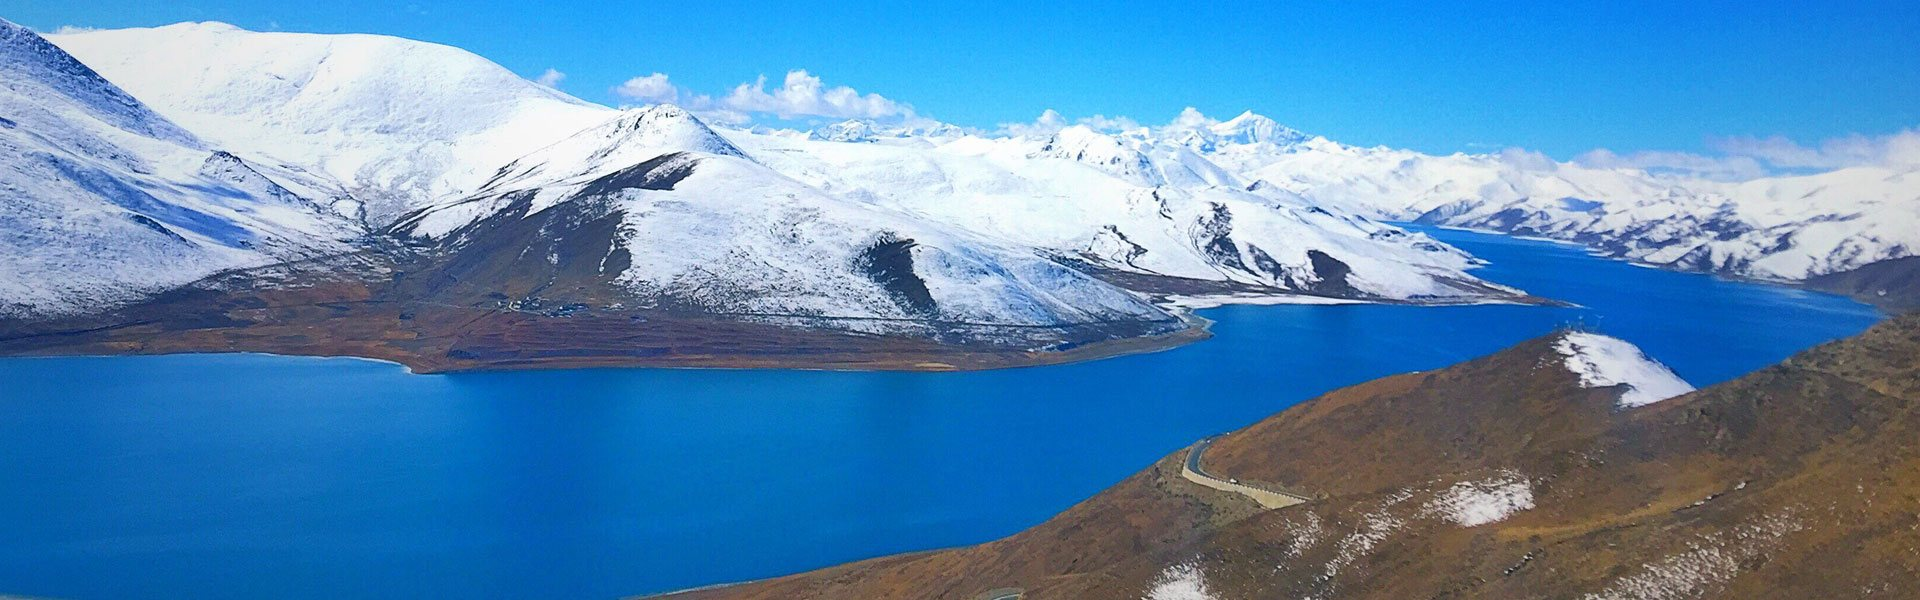 Capture the Winter Essence of Tibet